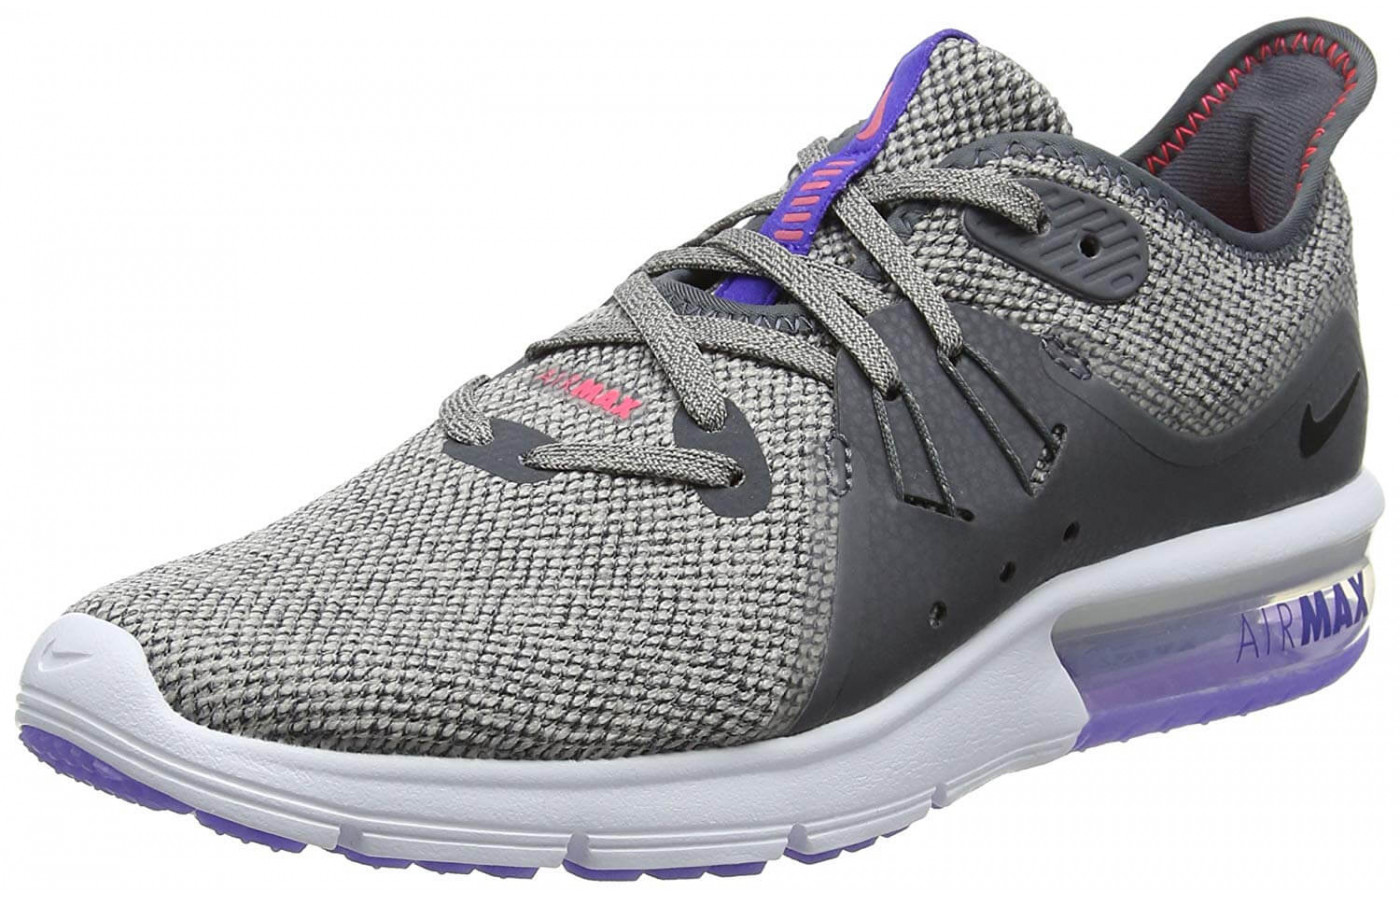 acef36ba76 The Air Max Sequent 3 is available in a number of different colorways ...